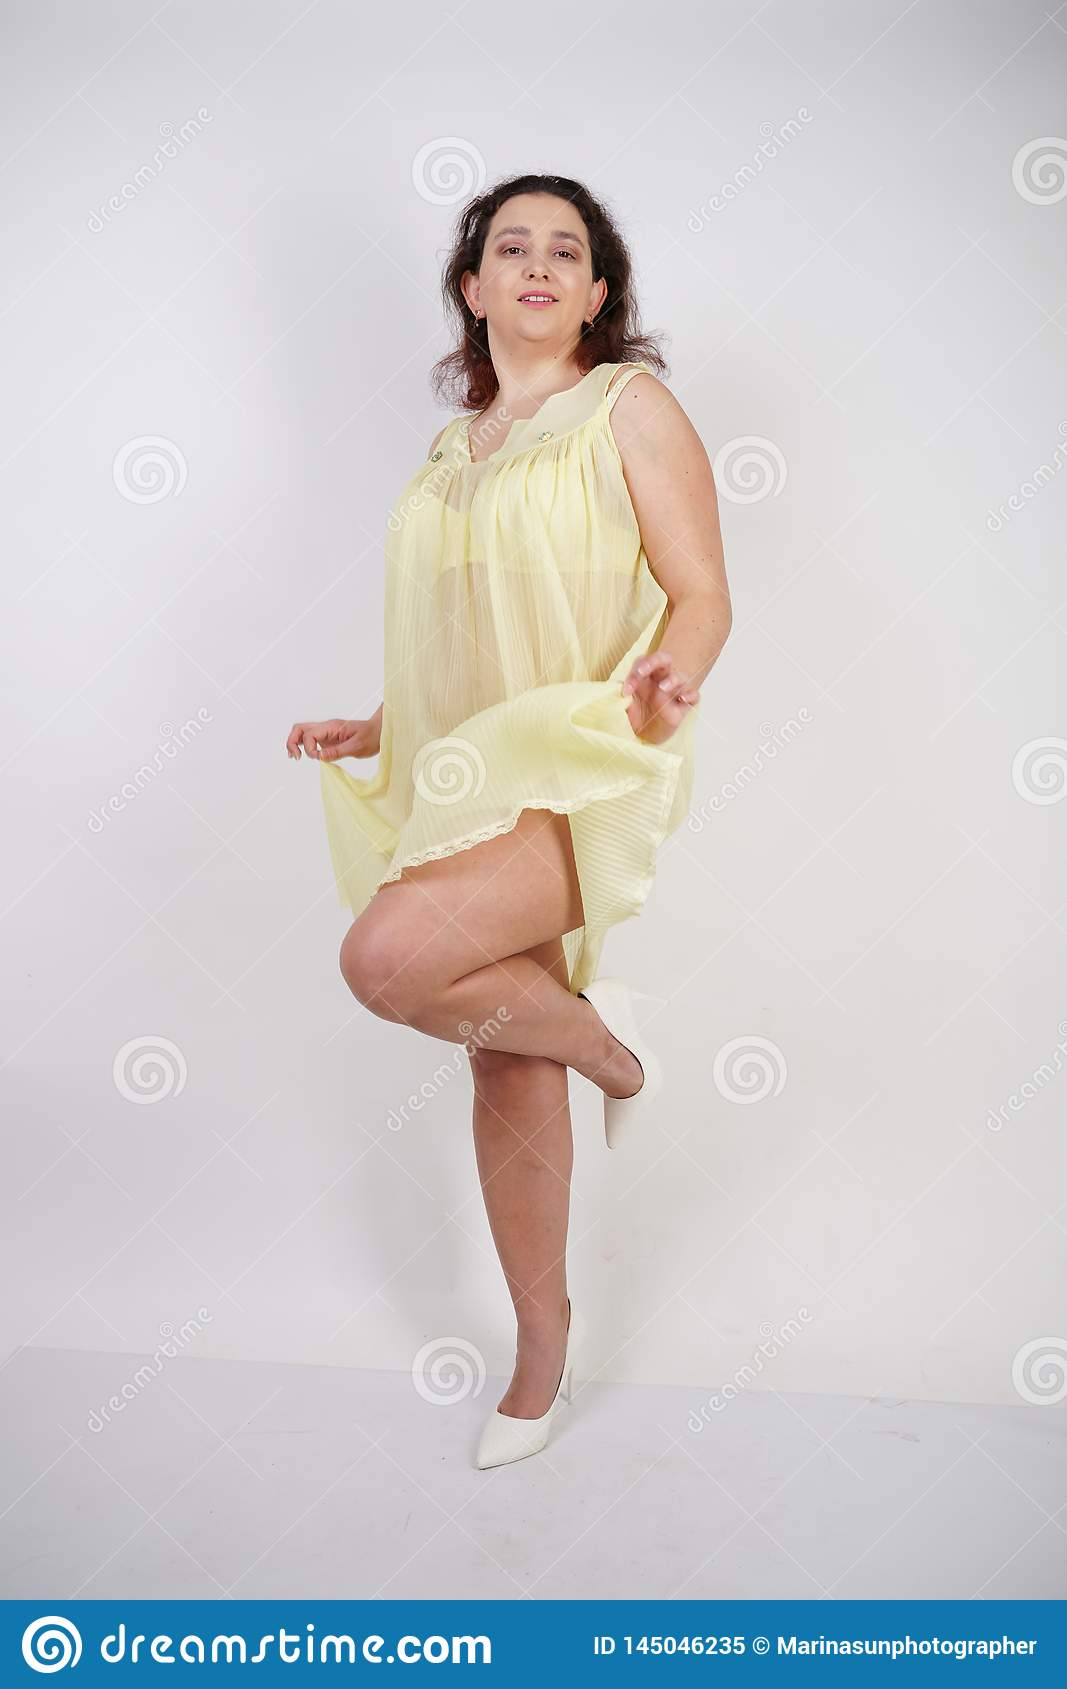 Obese Woman Lingerie Stock Images - Download 191 Royalty Free Photos-4226